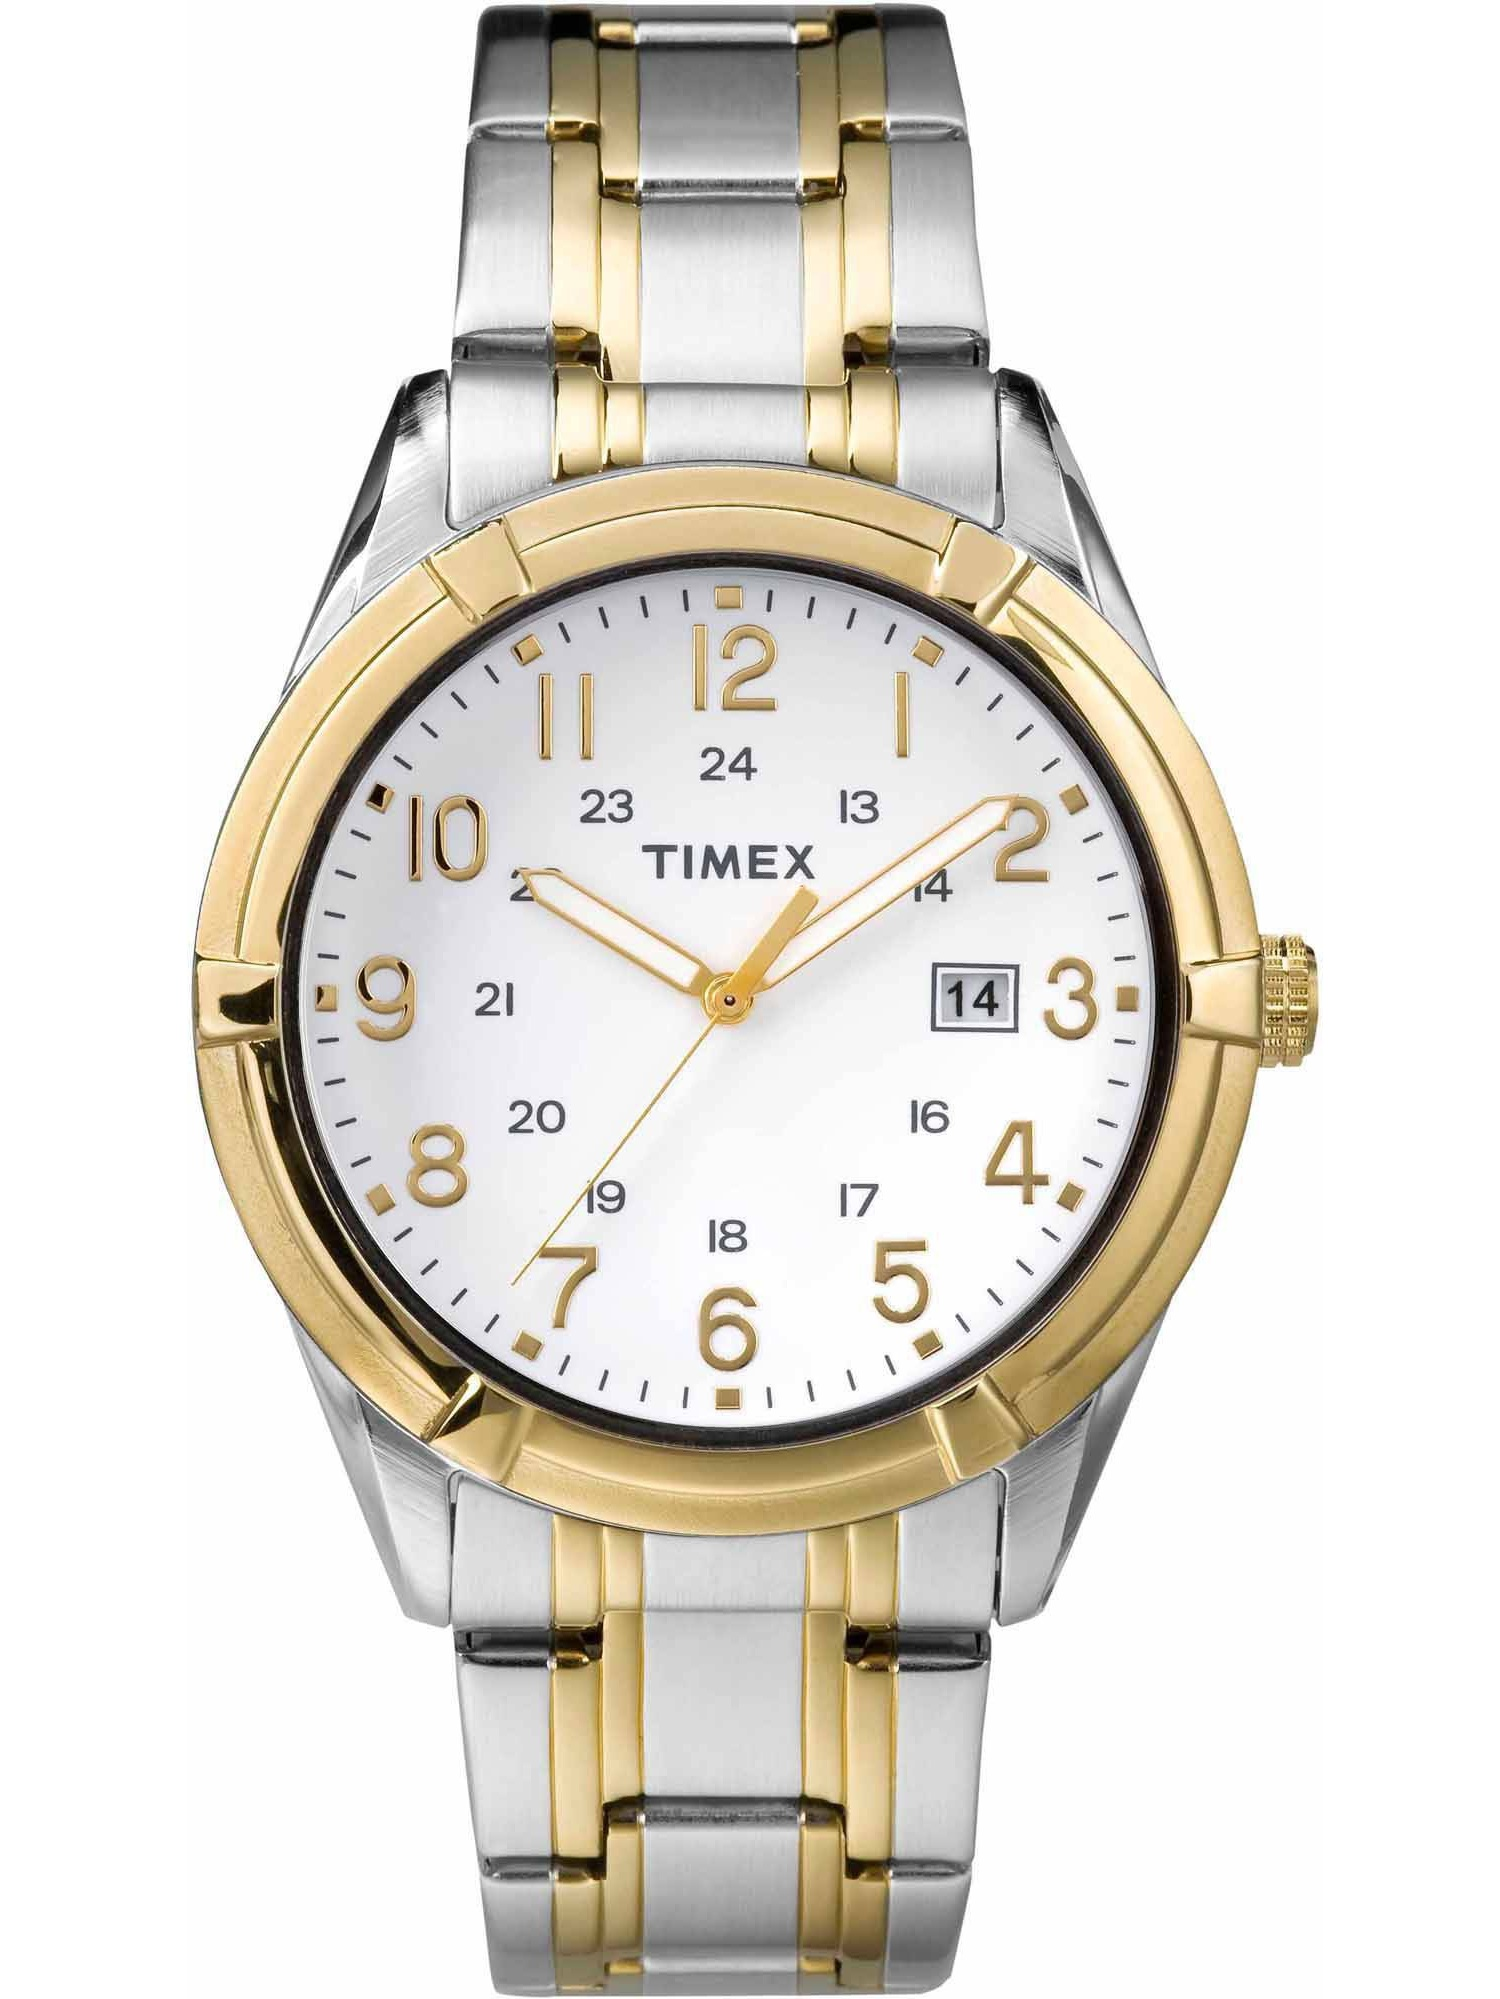 Timex Men's Easton Avenue Watch, Two-Tone Stainless Steel Bracelet